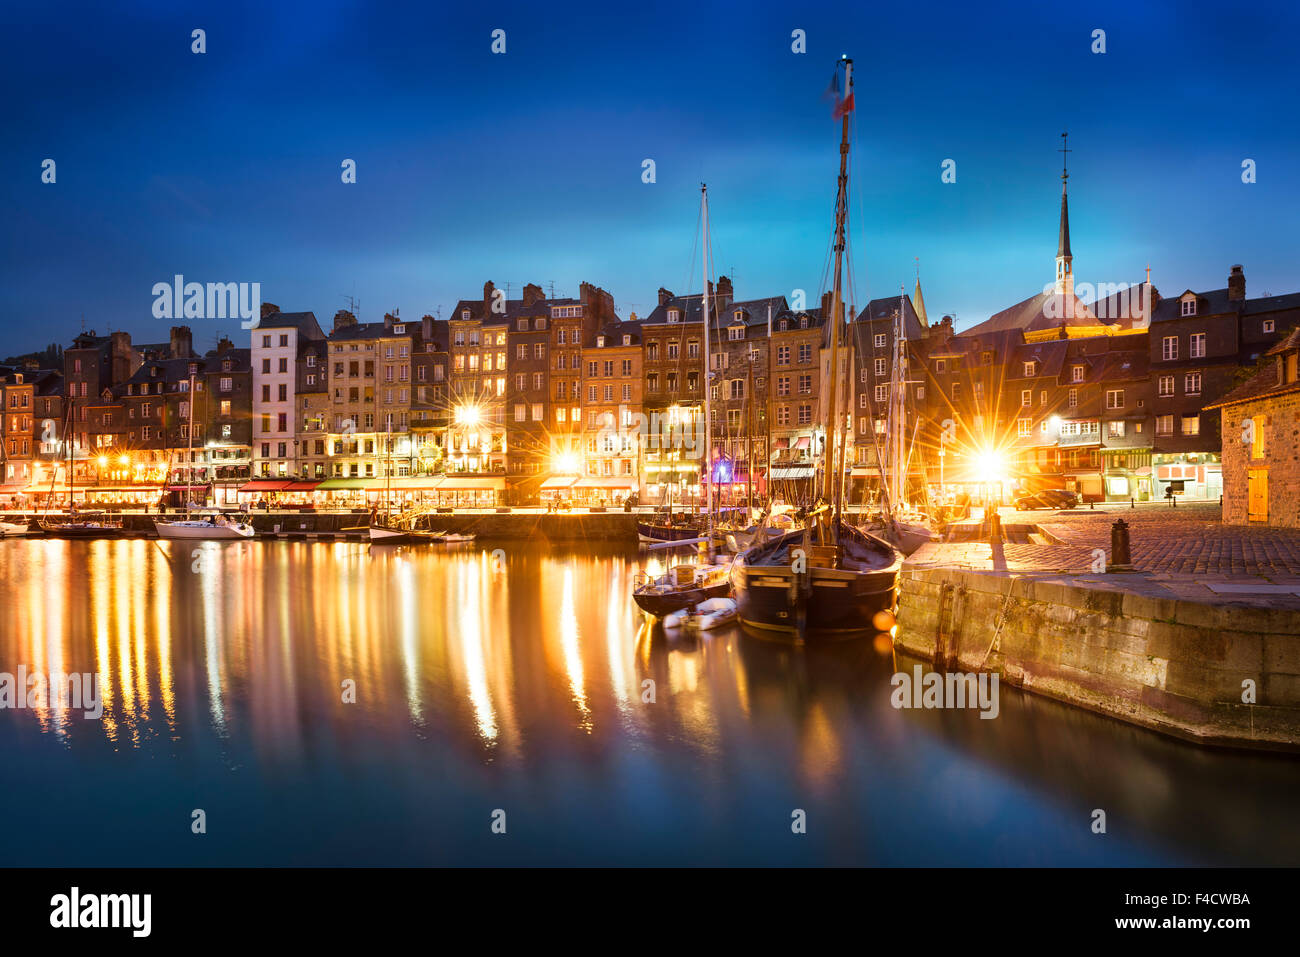 Nightscape of the old harbor in Honfleur, France (02) - Stock Image